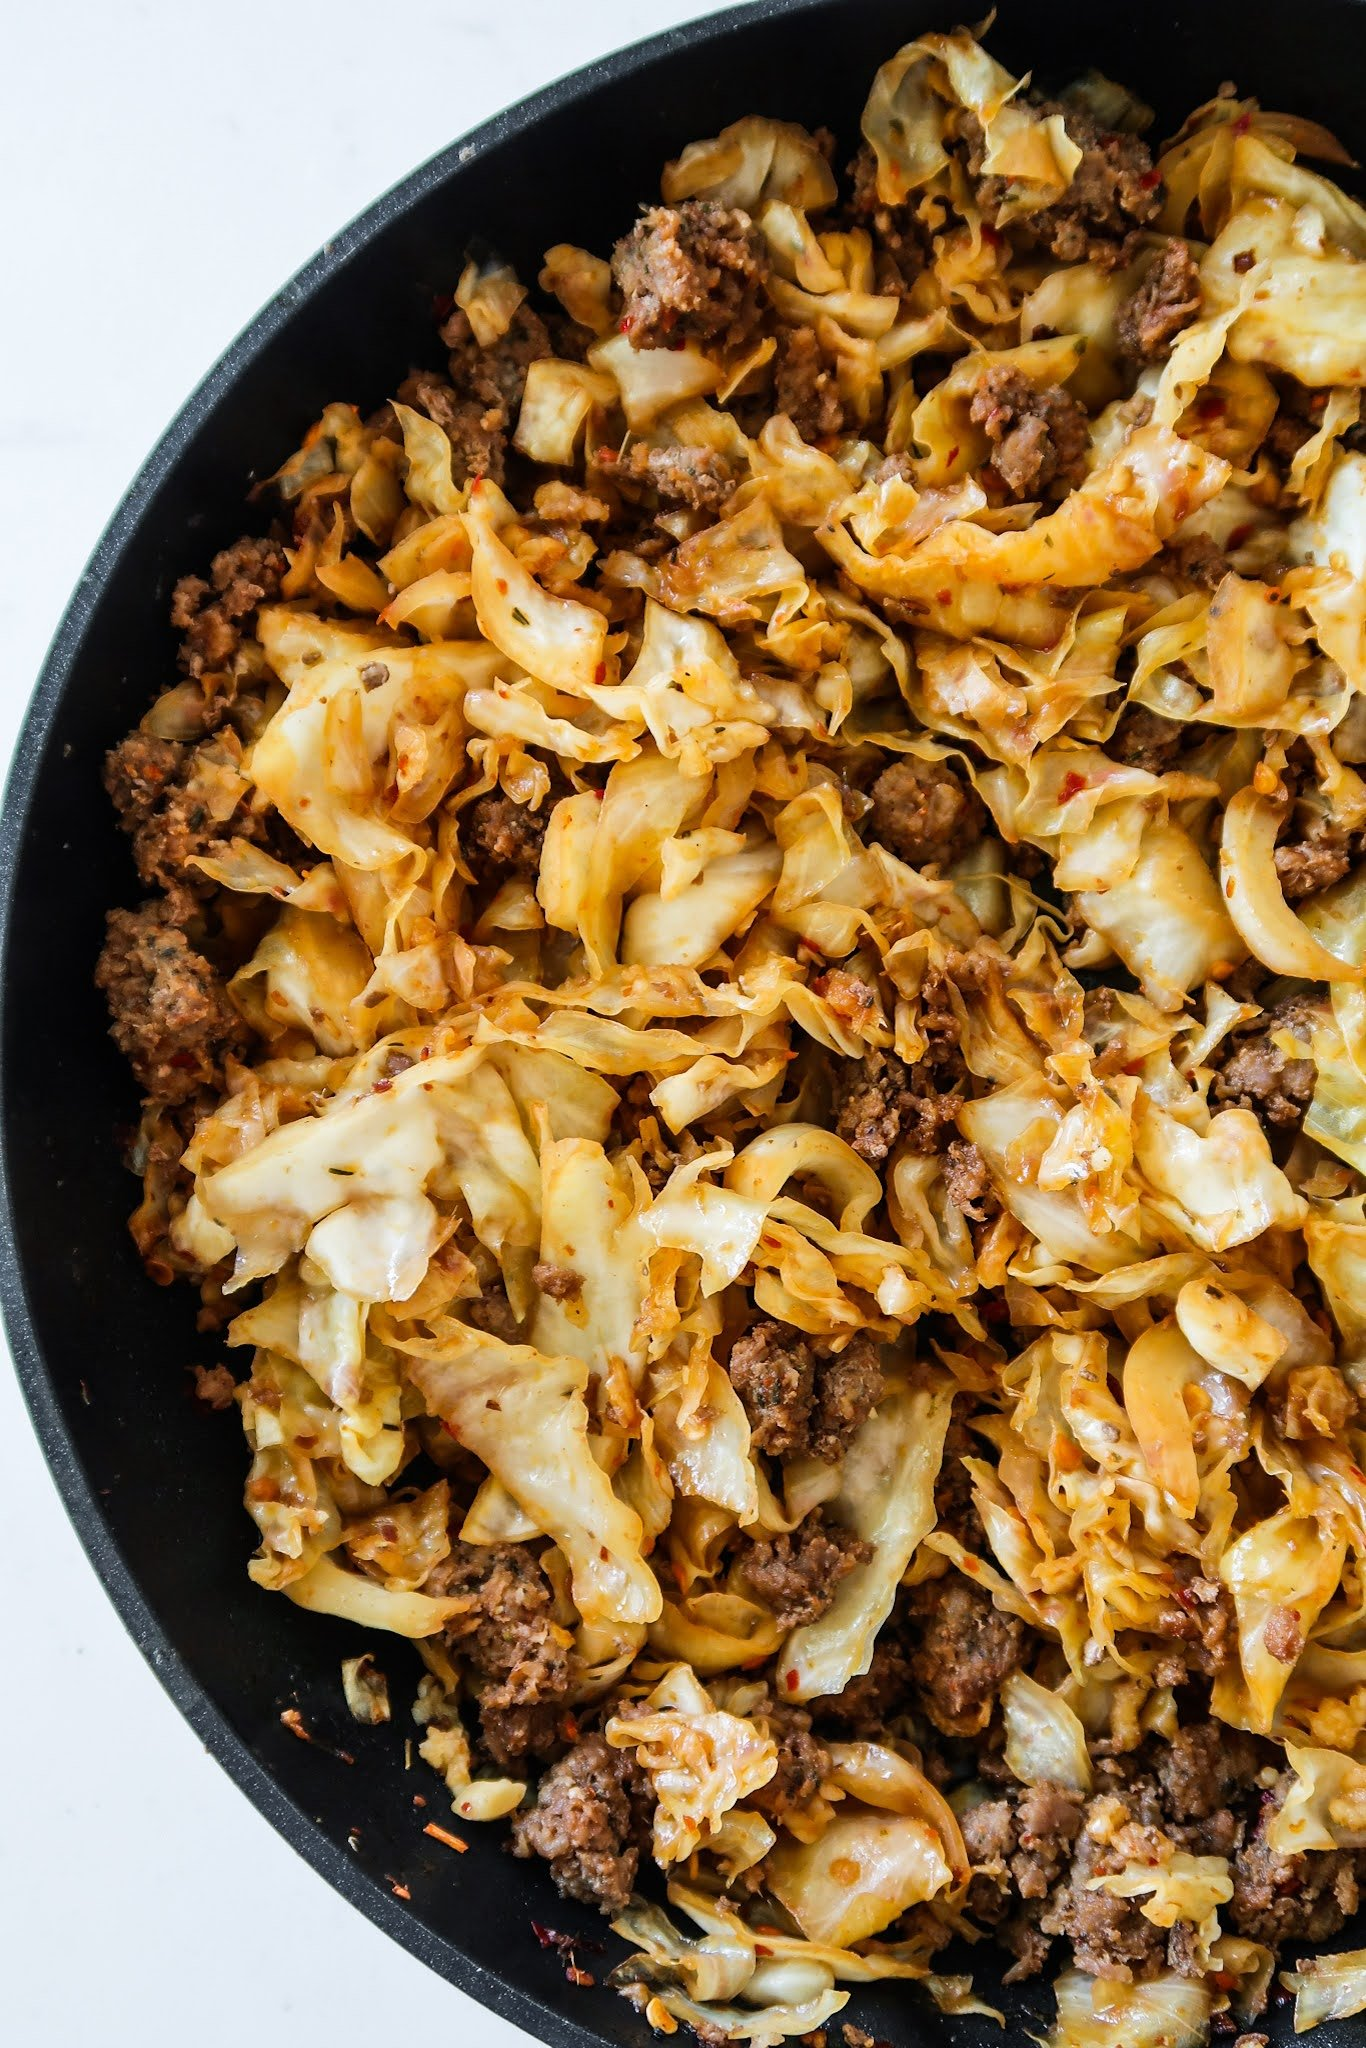 This 30-Minute healthy ground beef and cabbage recipe is low carb, gluten free dairy free, spicy and an absolutely delicious healthy dinner idea for busy weeknights!